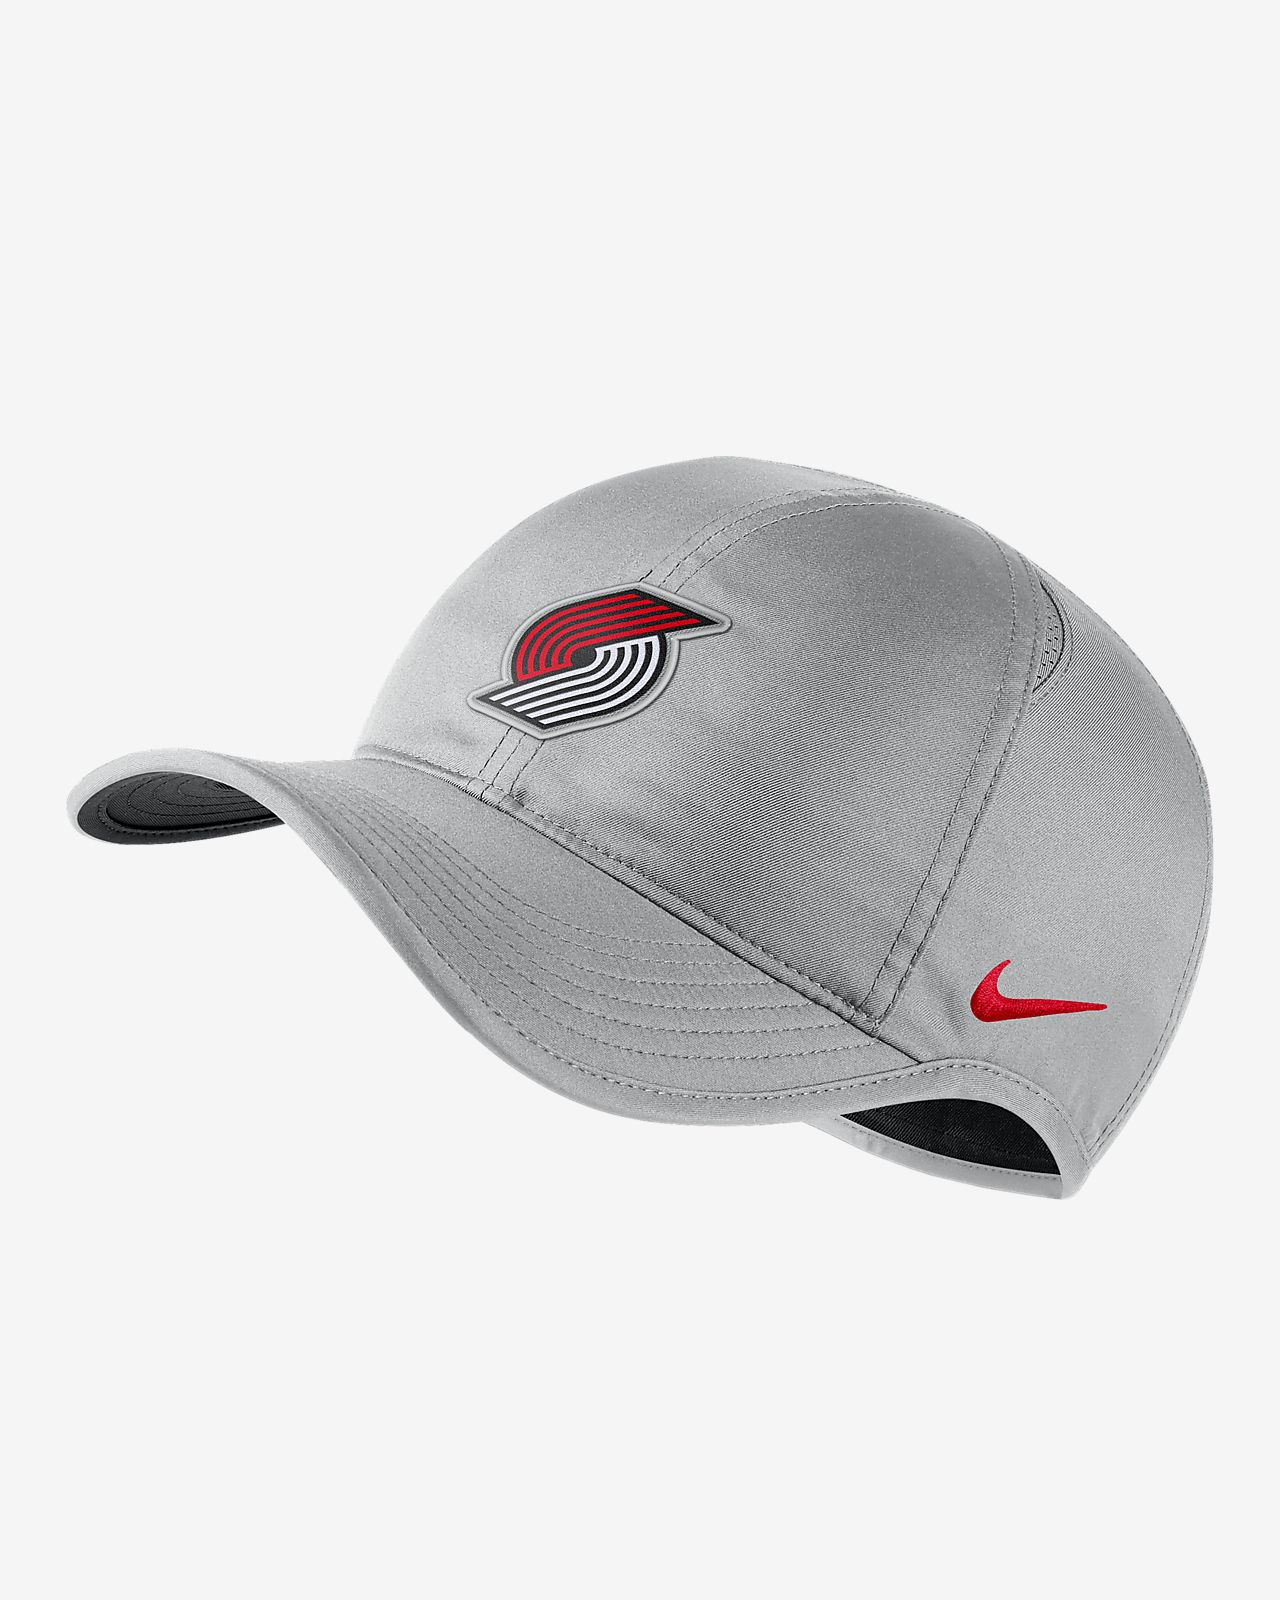 Portland Trail Blazers Nike AeroBill Featherlight NBA Hat